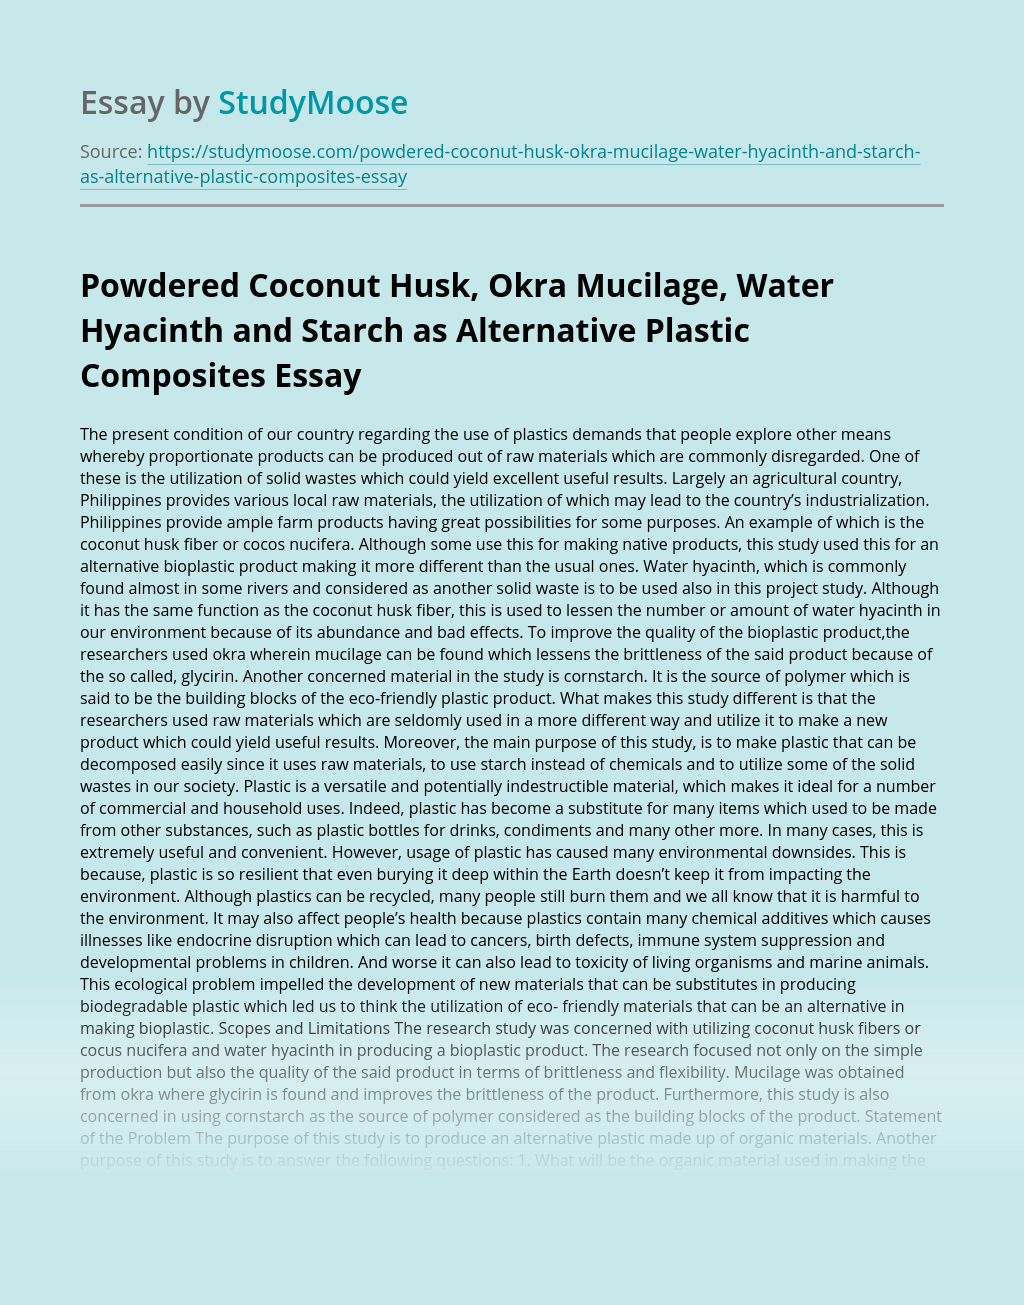 Powdered Coconut Husk, Okra Mucilage, Water Hyacinth and Starch as Alternative Plastic Composites